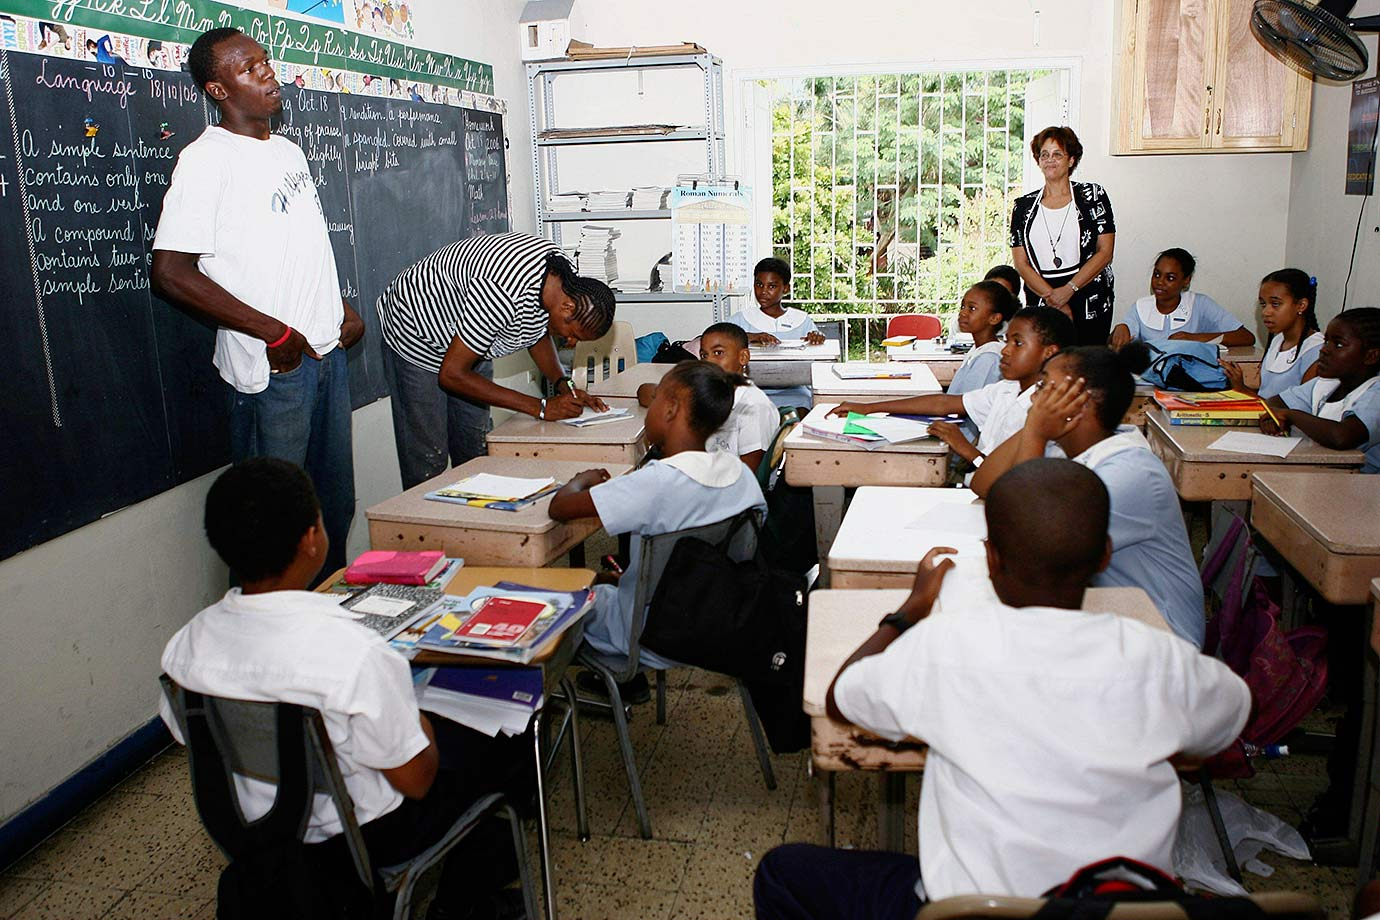 A resident of Kingston, Jamaica, Usain Bolt is pictured here in 2007 during a visit to a grade school.